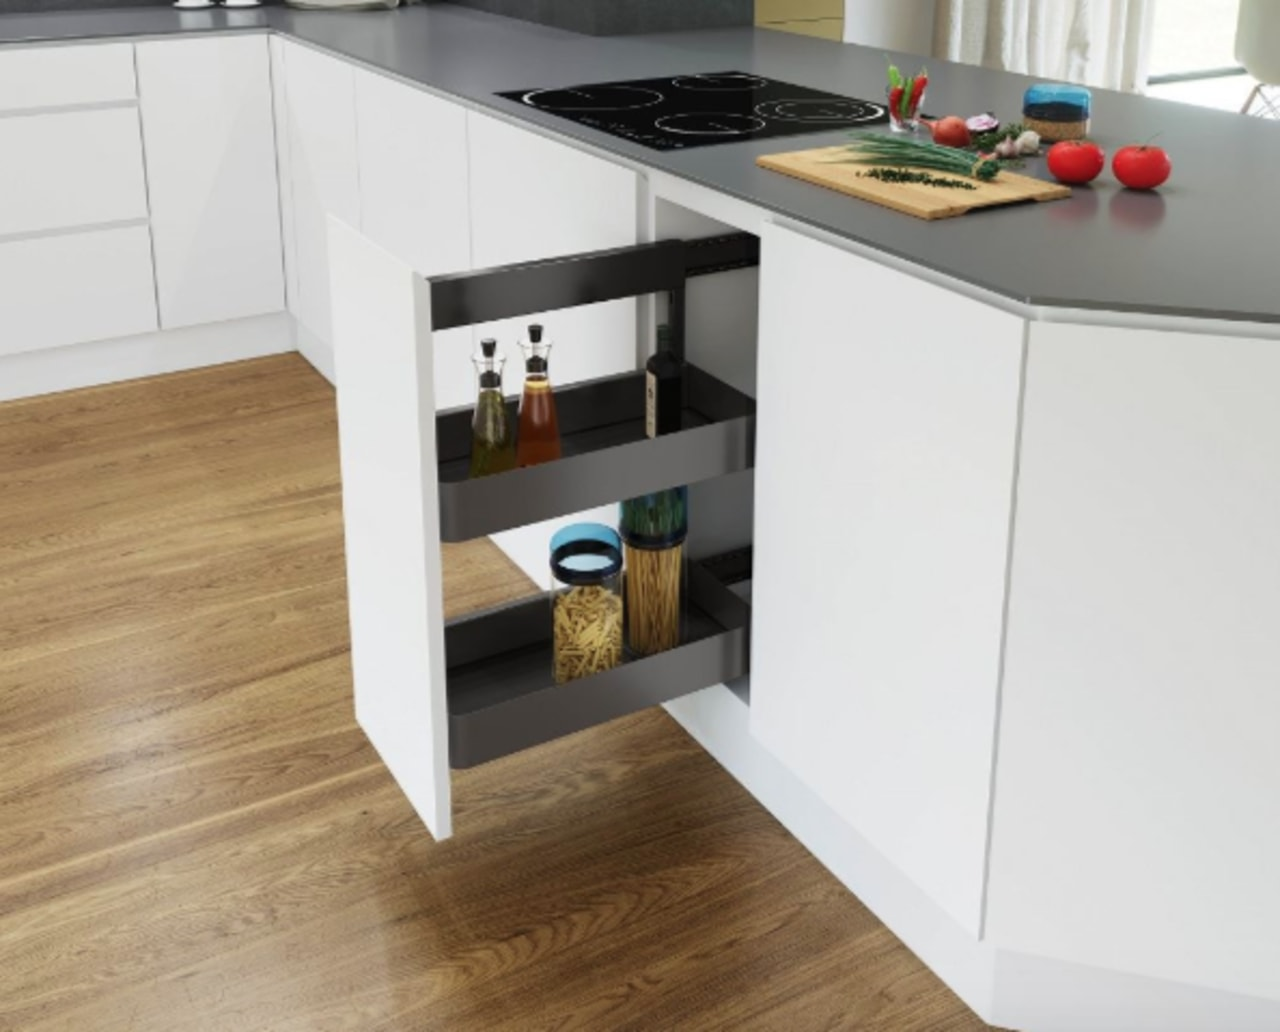 The Planero Vs Sub Side Pull Out installed angle, cabinetry, countertop, drawer, floor, flooring, furniture, hardwood, kitchen, laminate flooring, product, sideboard, table, wood, wood flooring, white